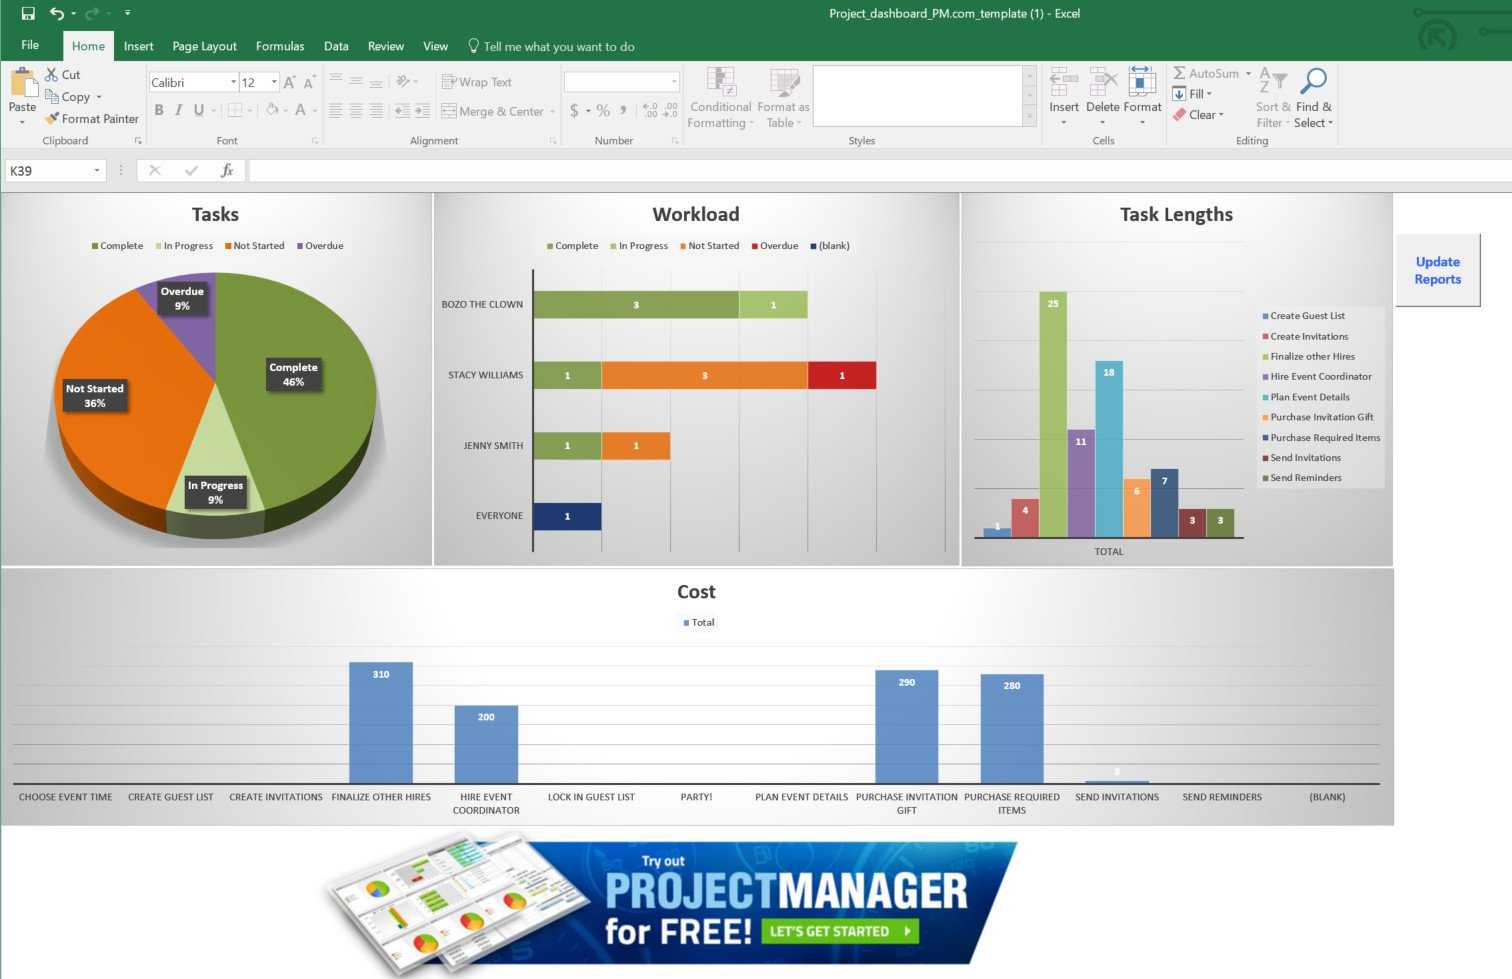 Guide To Excel Project Management - Projectmanager.com Throughout Project Management Worksheet Template